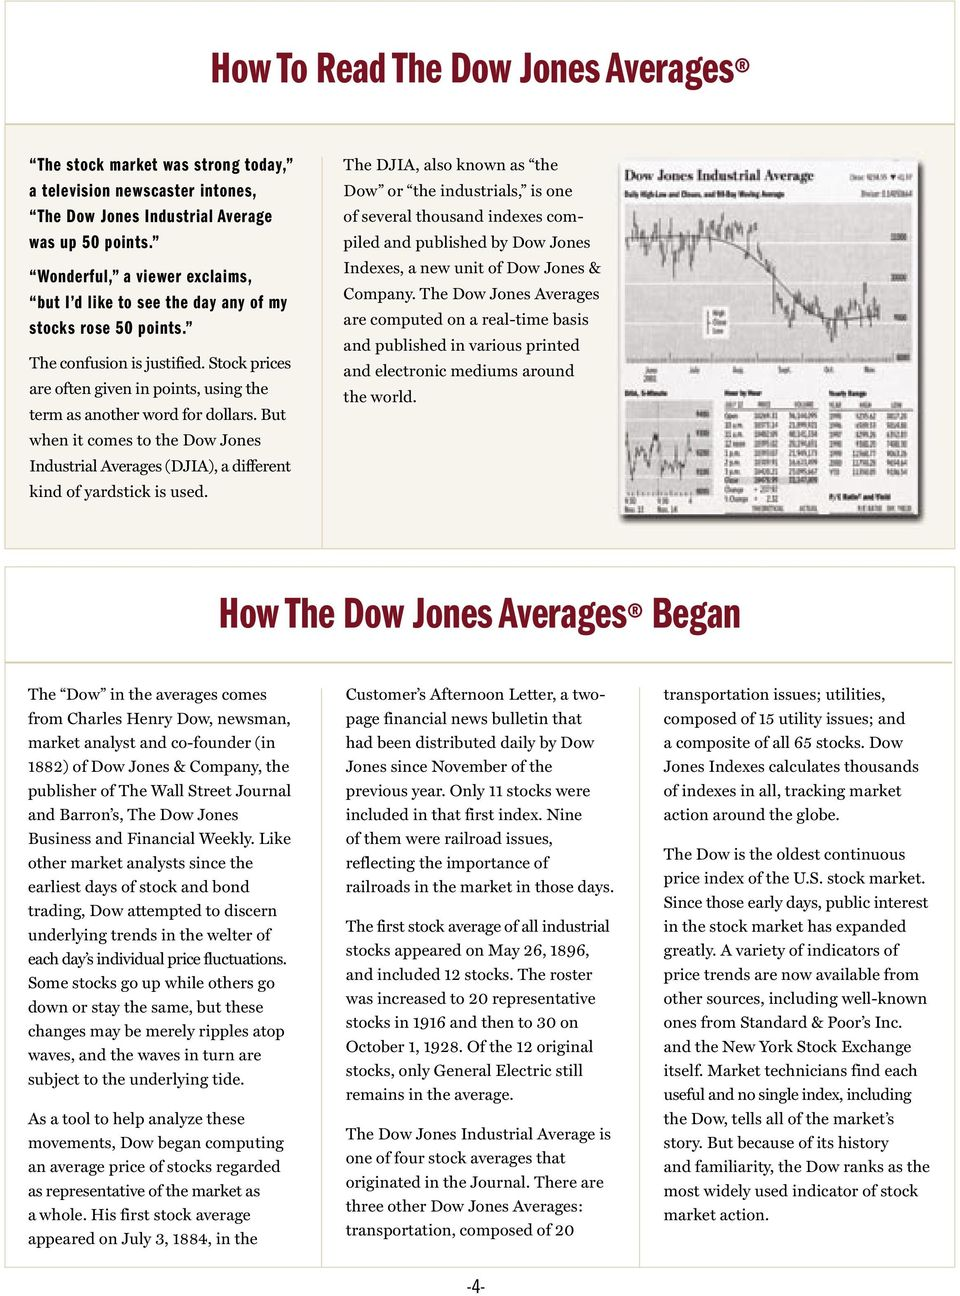 Stock prices are often given in points, using the term as another word for dollars. But when it comes to the Dow Jones Industrial Averages (DJIA), a different kind of yardstick is used.